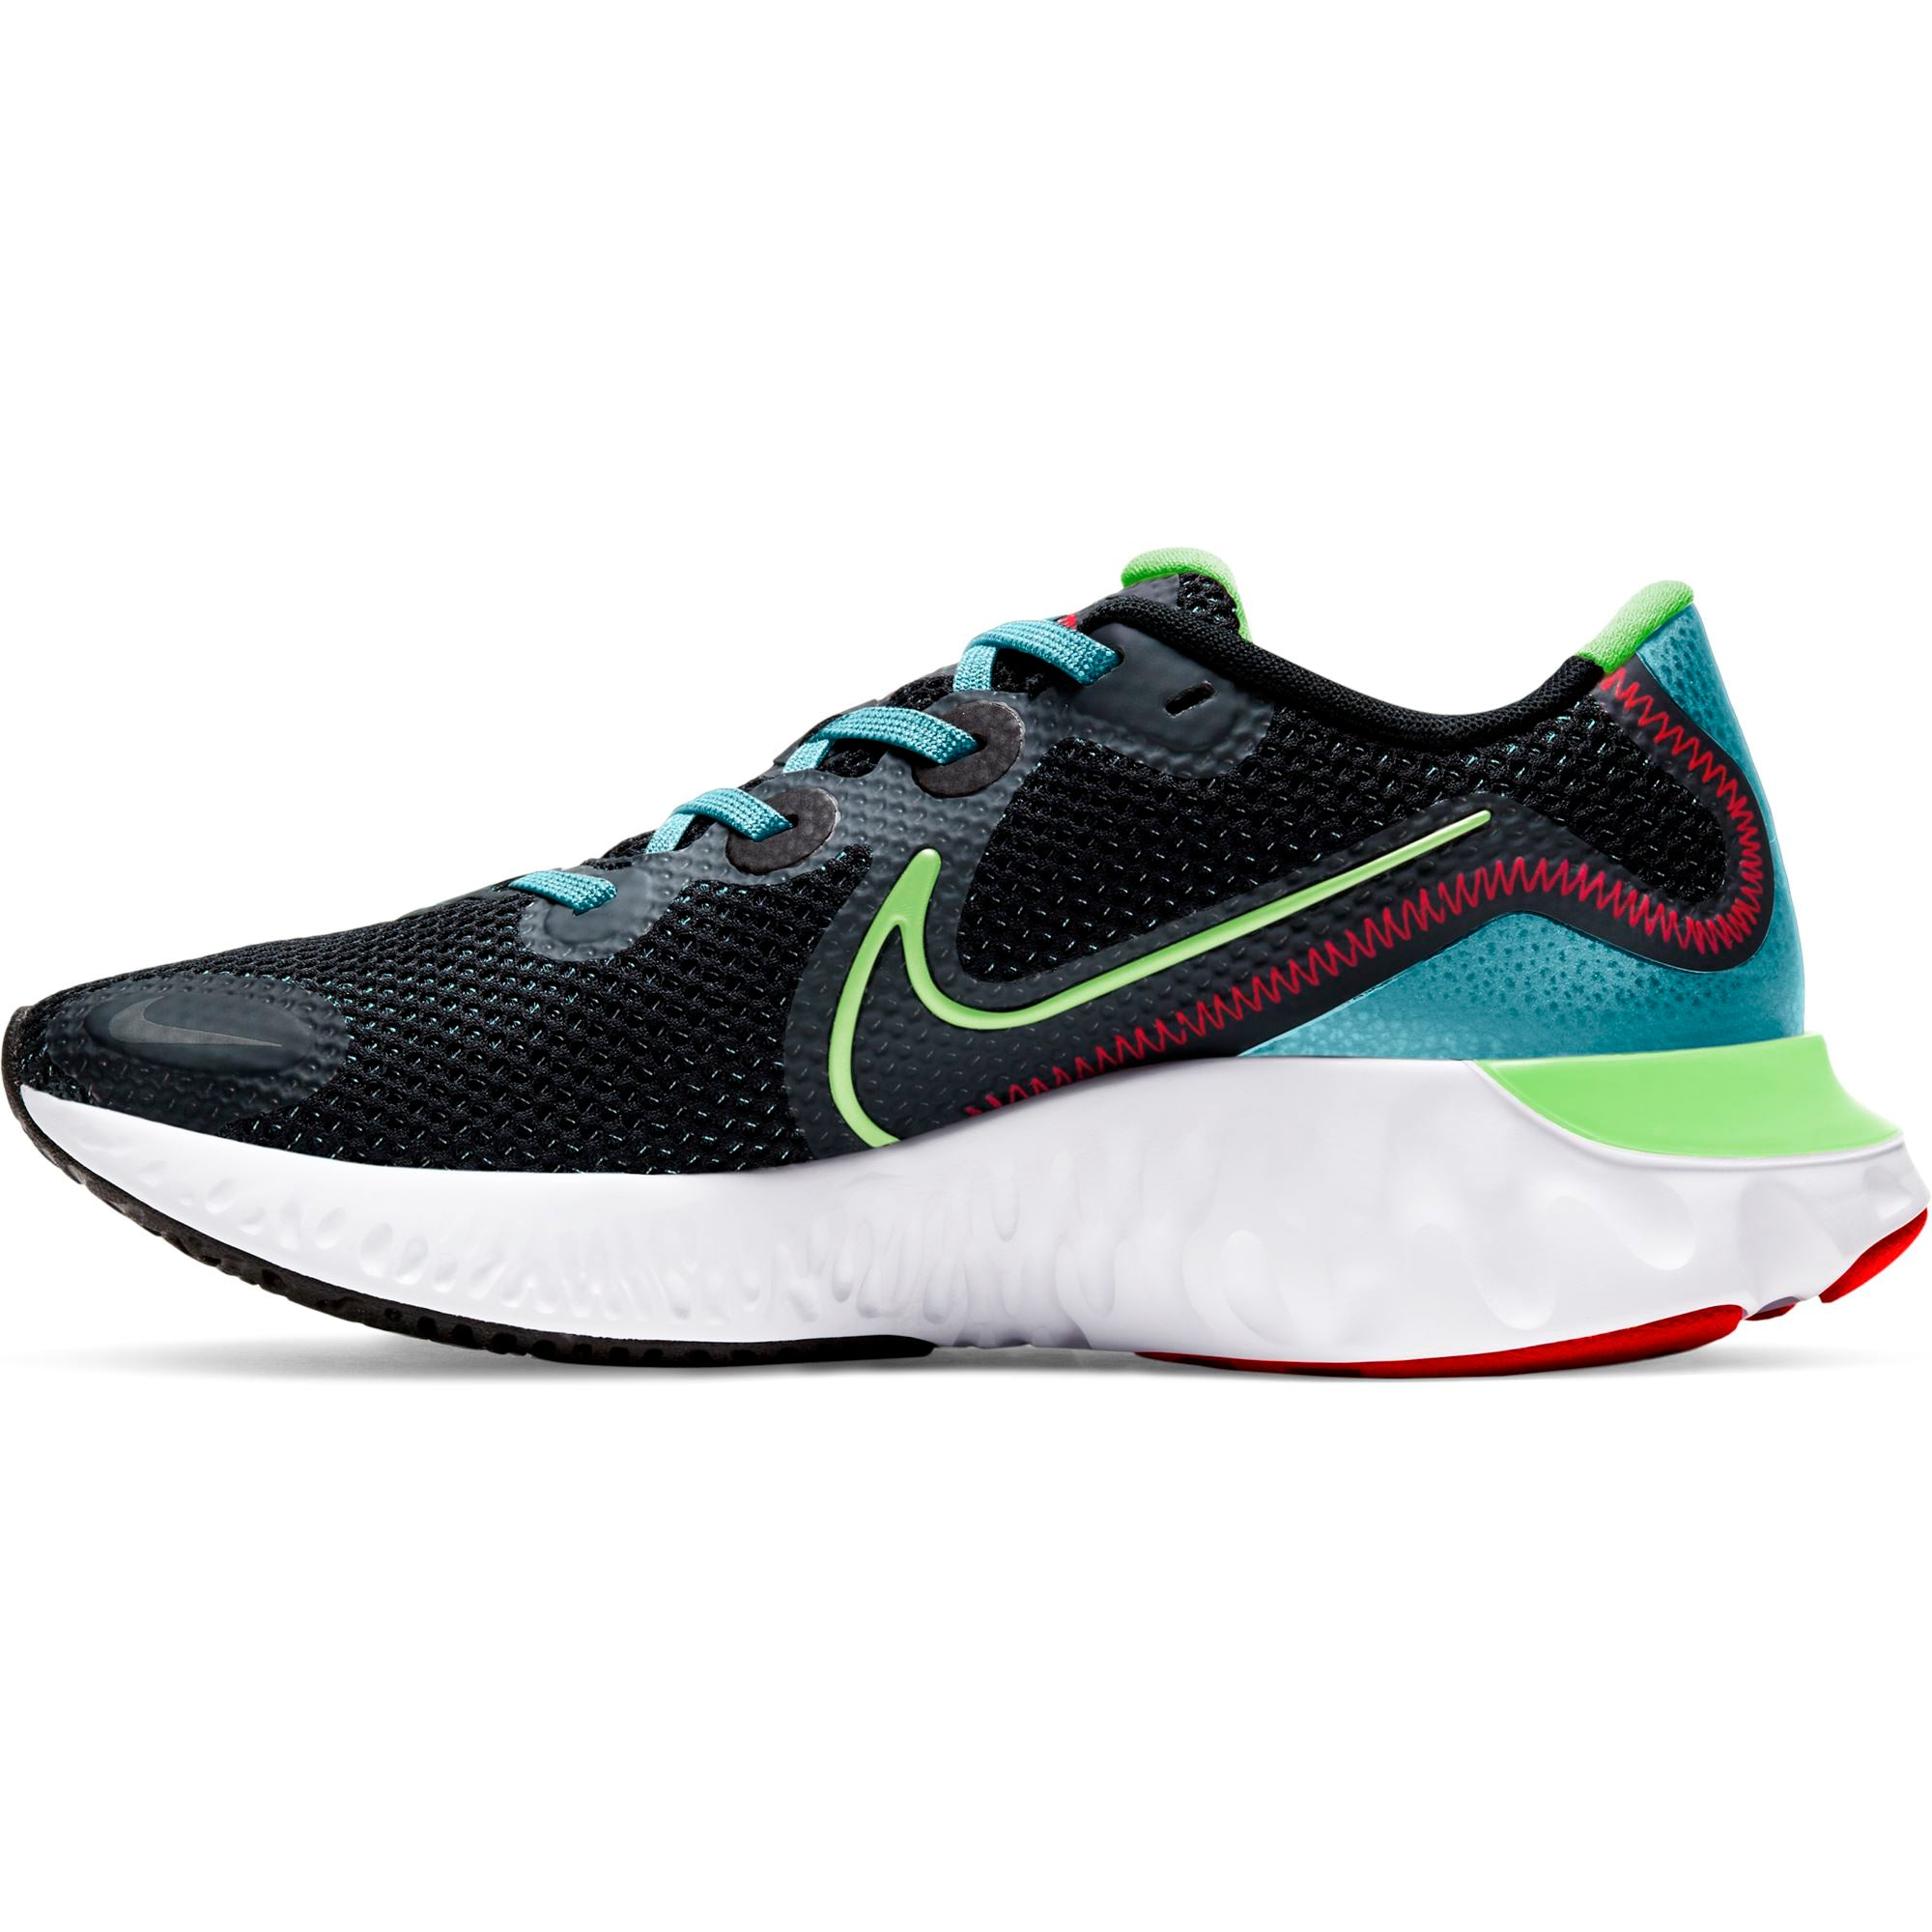 Nike Womens Renew Run - Black/Barely Volt/Glacier Ice SP-Footwear-Womens Nike